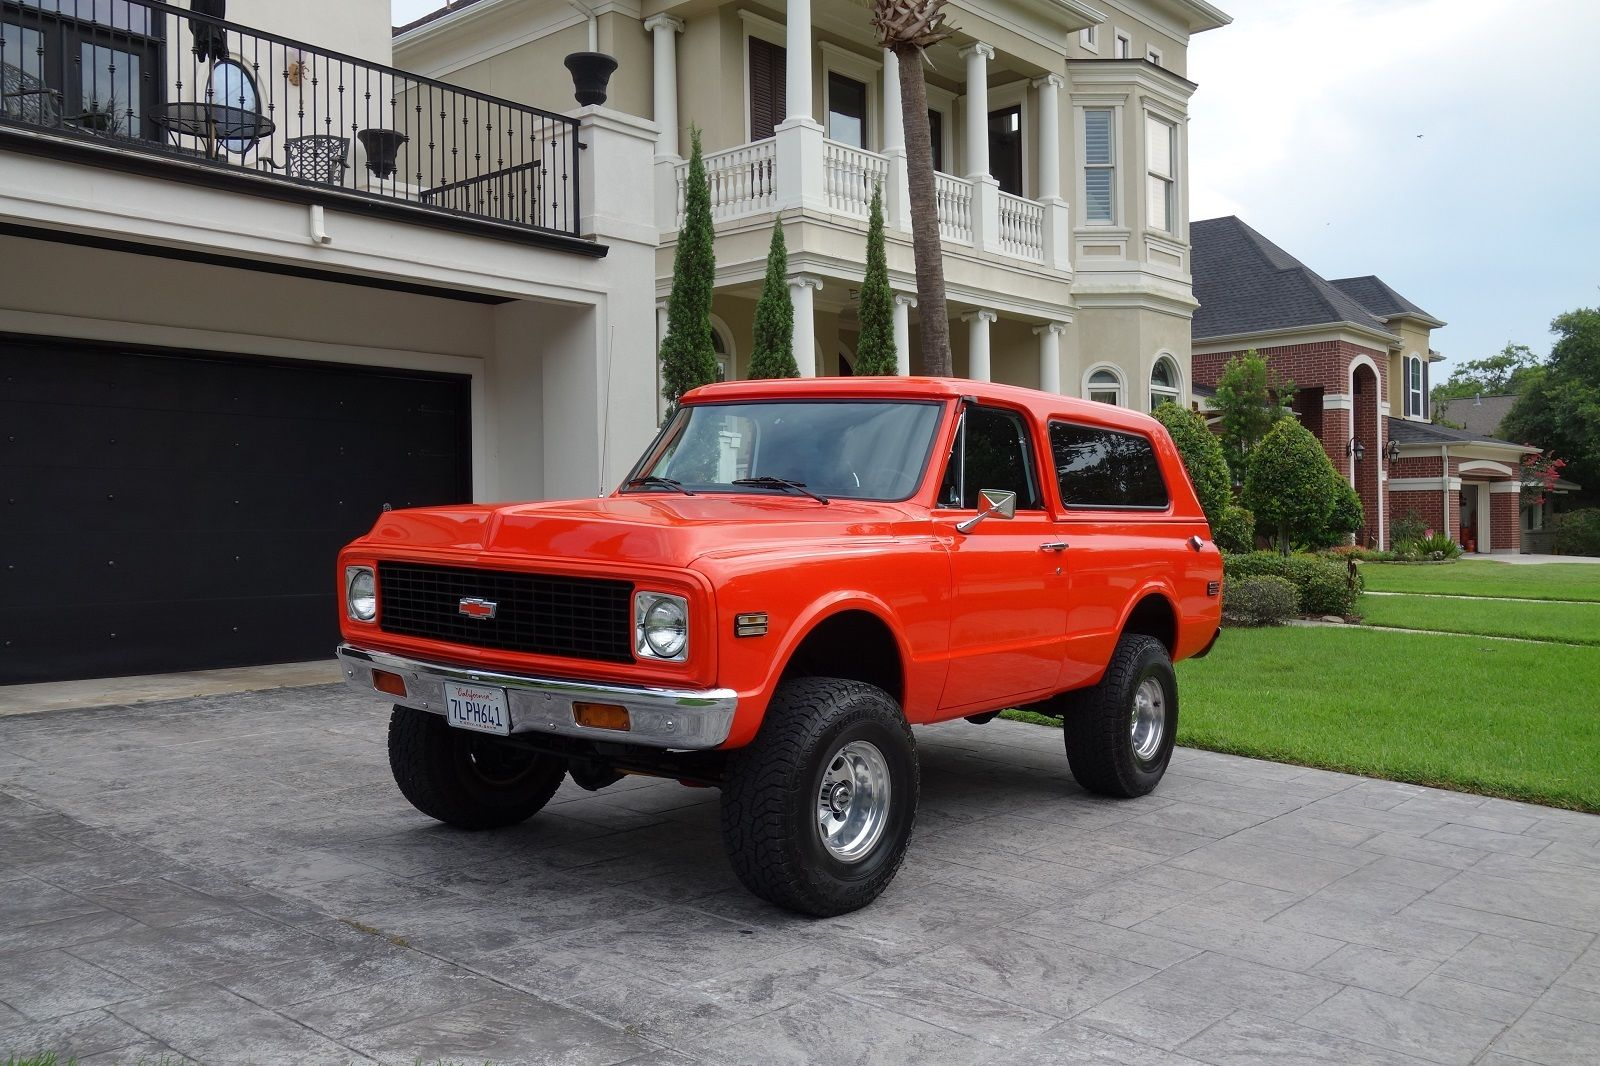 nicely restored 1972 Chevrolet Blazer lifted for sale